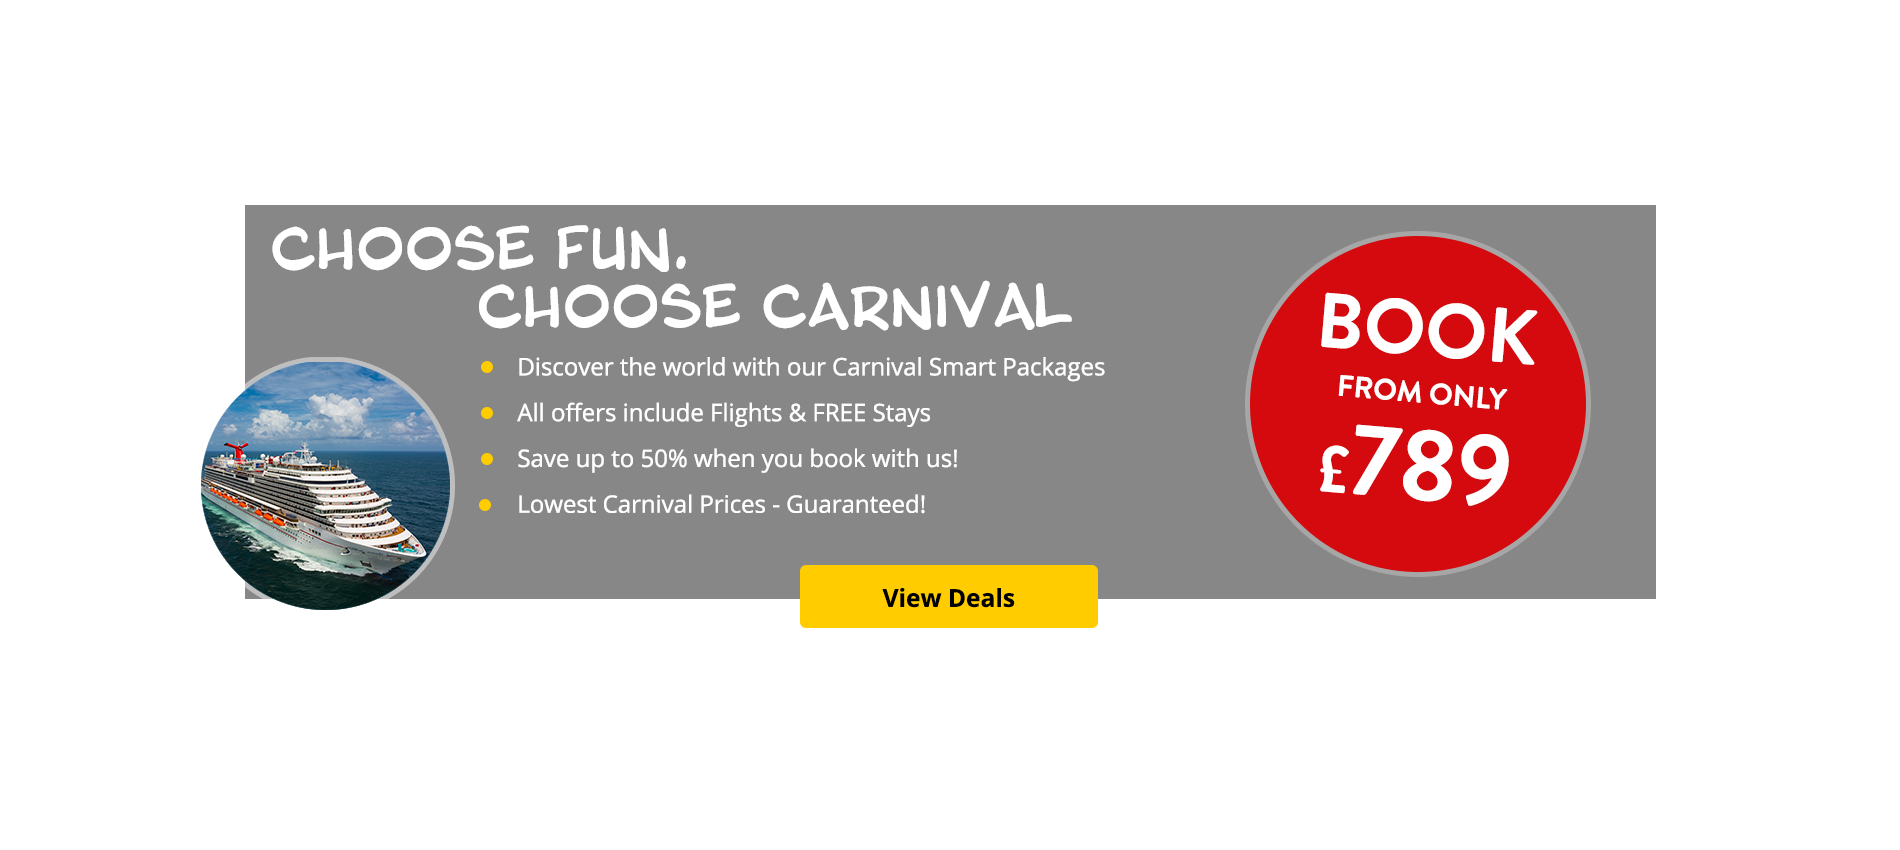 Choose fun, choose Carnival. Discover the world with our Carnival Smart Packages.